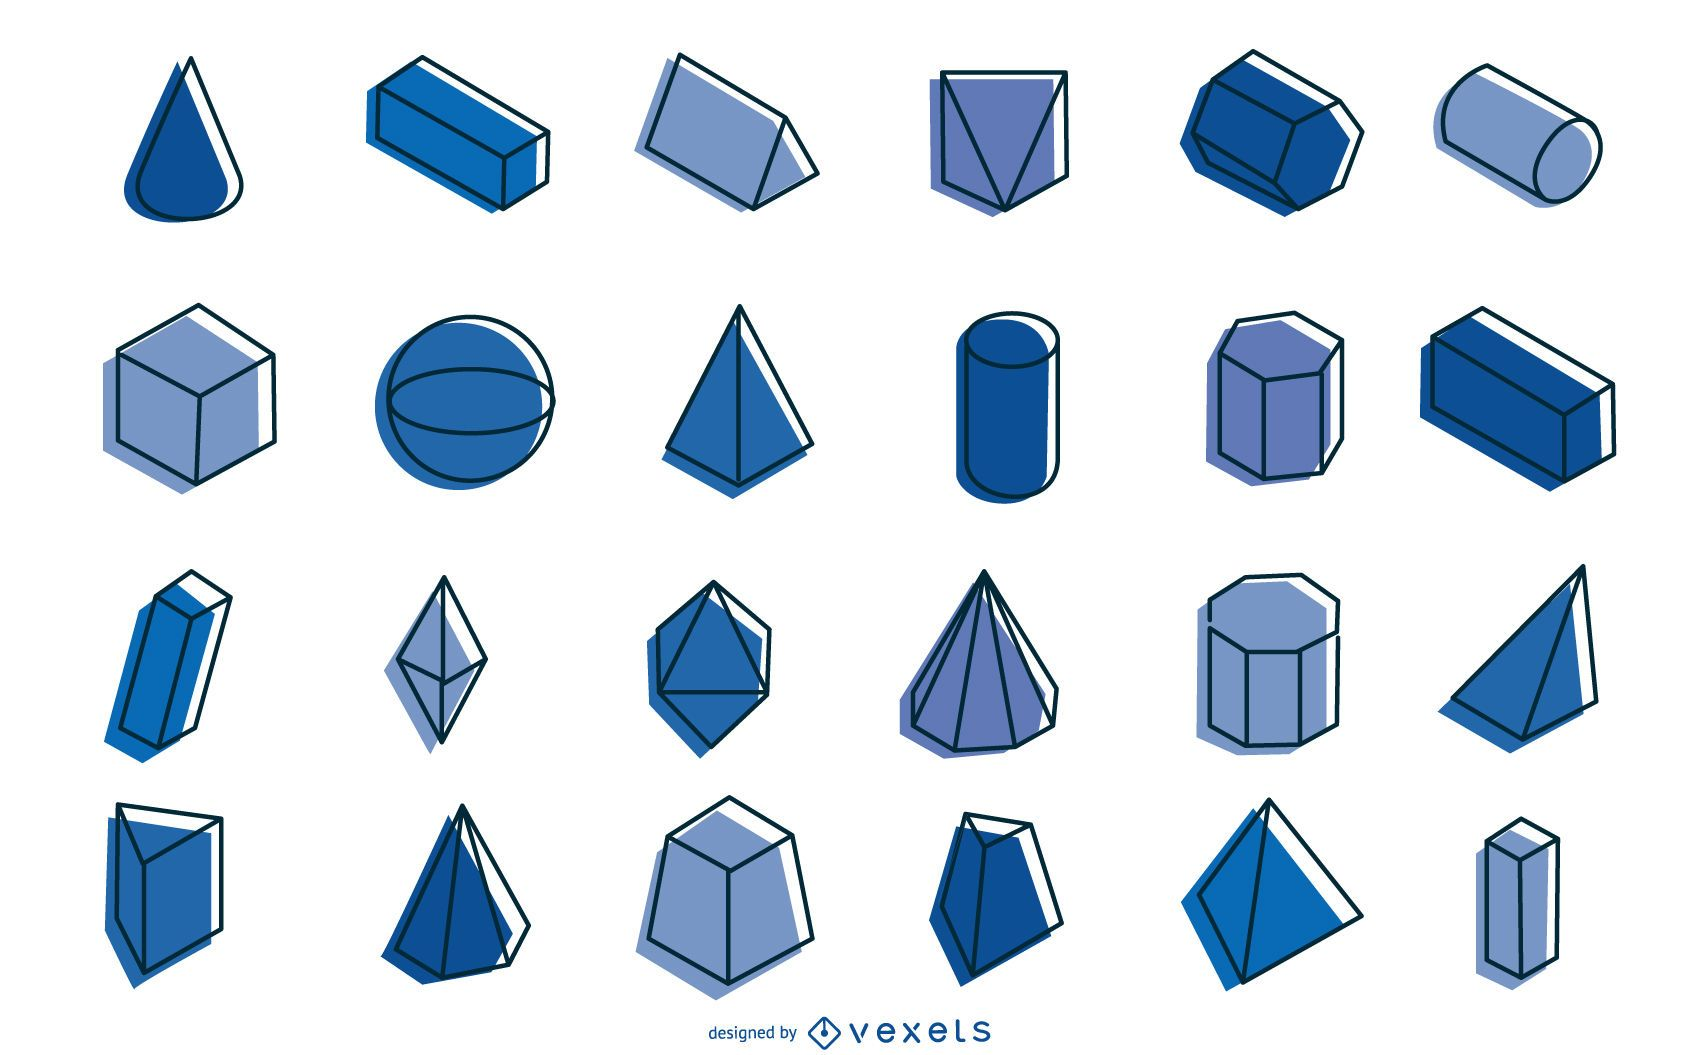 Geometric shapes collection